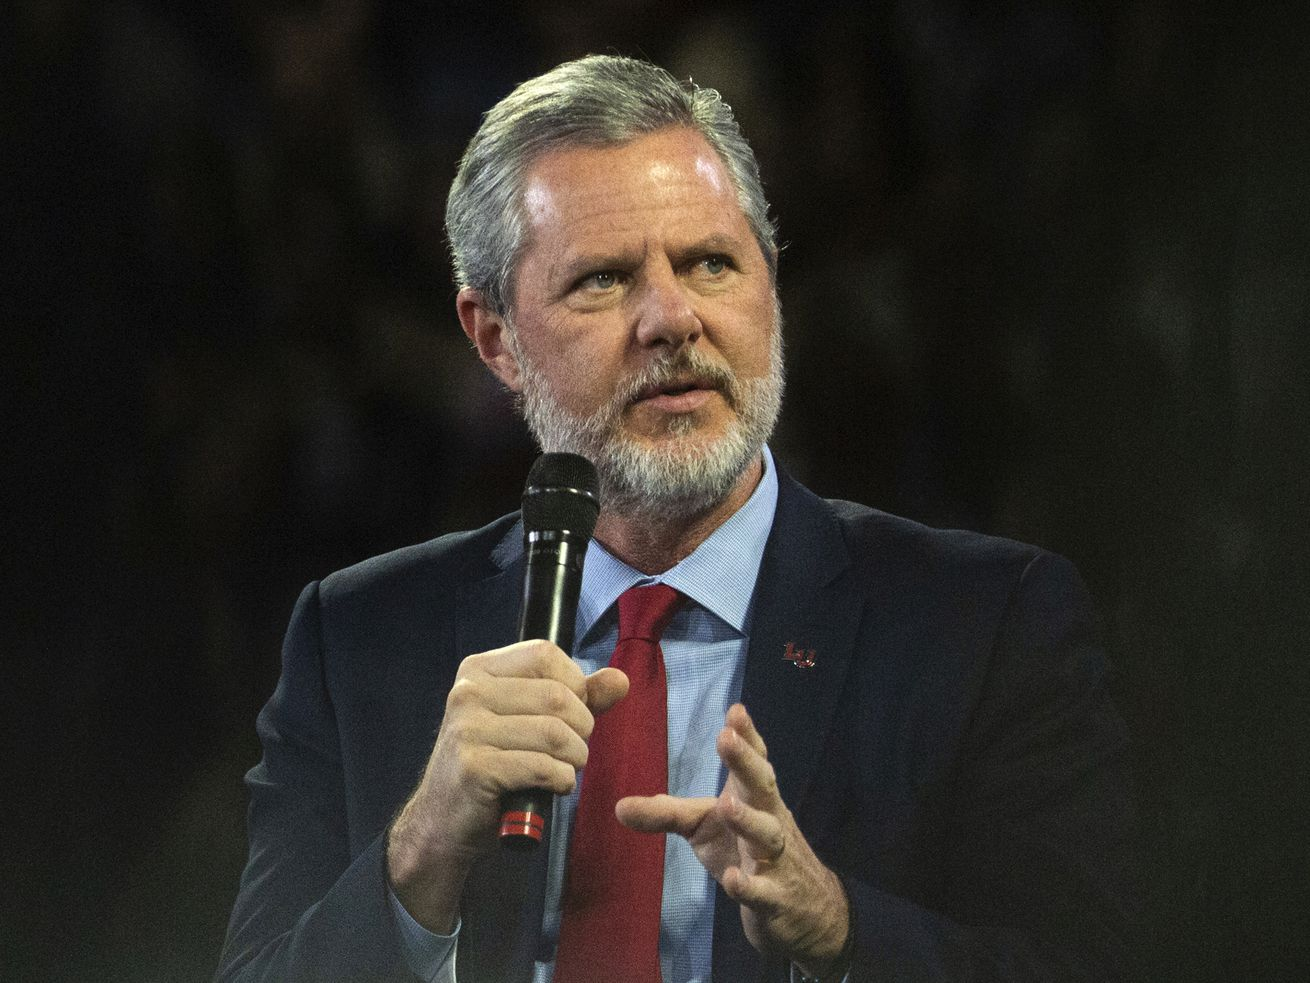 """In this, Nov. 13 2019, file photo, Liberty University President Jerry Falwell Jr. talks to Donald Trump Jr. about his new book """"Triggered"""" during convocation at Liberty University in Lynchburg, Va."""